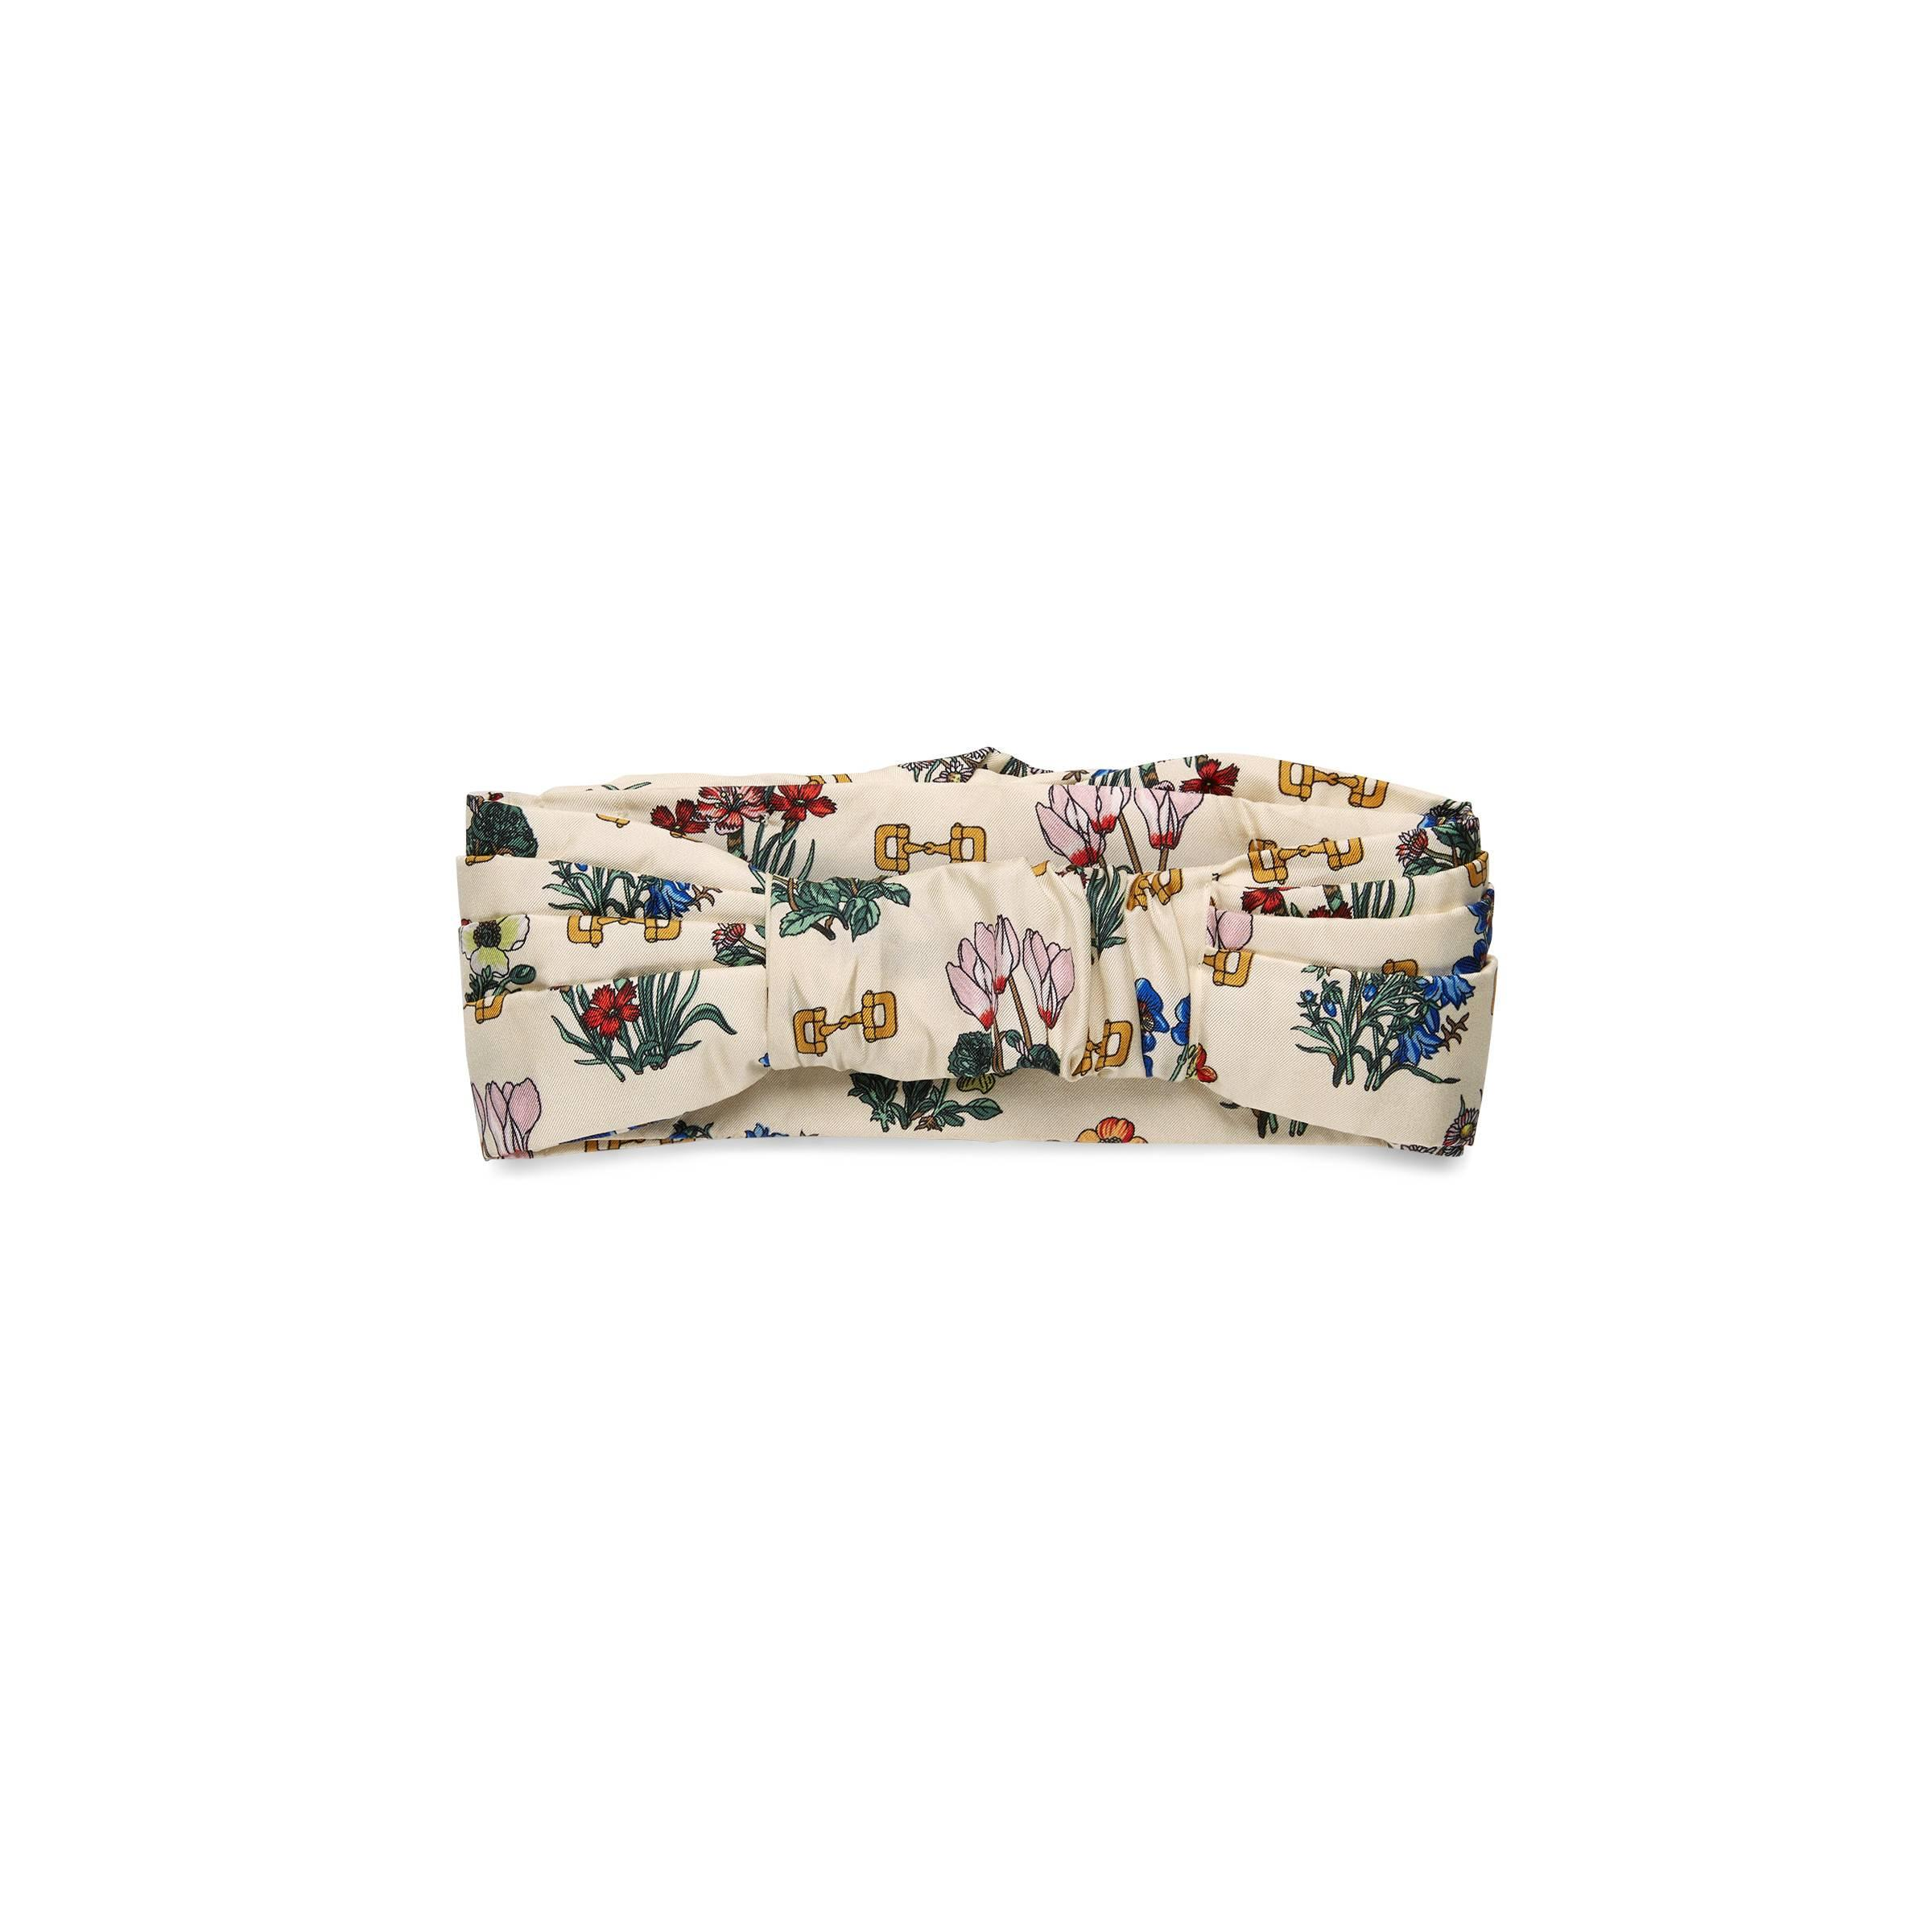 ae87e657f2d Gucci - White Headband With Flowers And Stirrups Print - Lyst. View  fullscreen